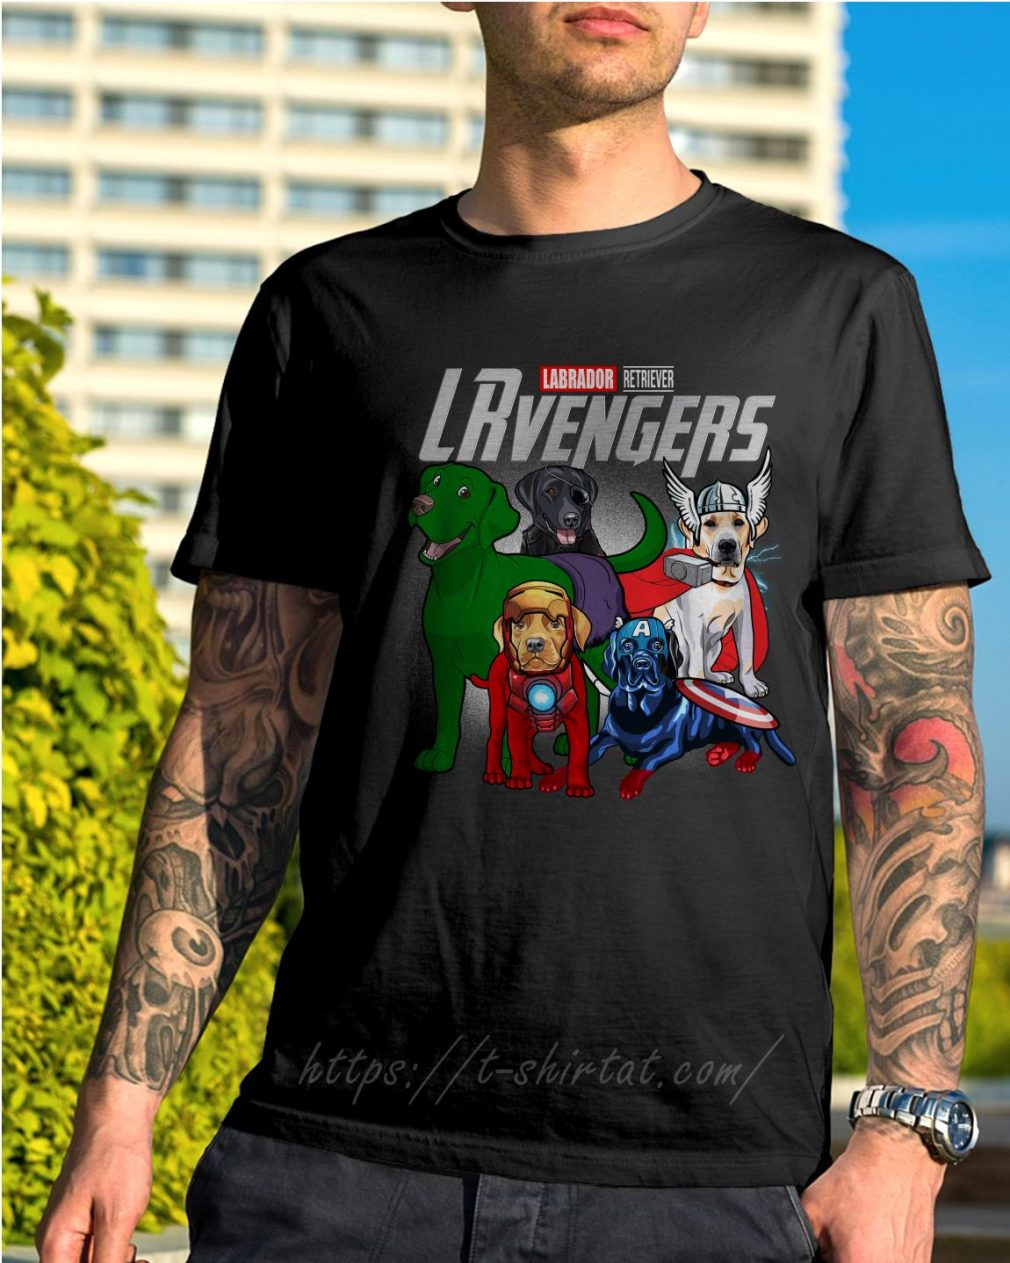 Marvel Labrador Retriever LRvengers shirt